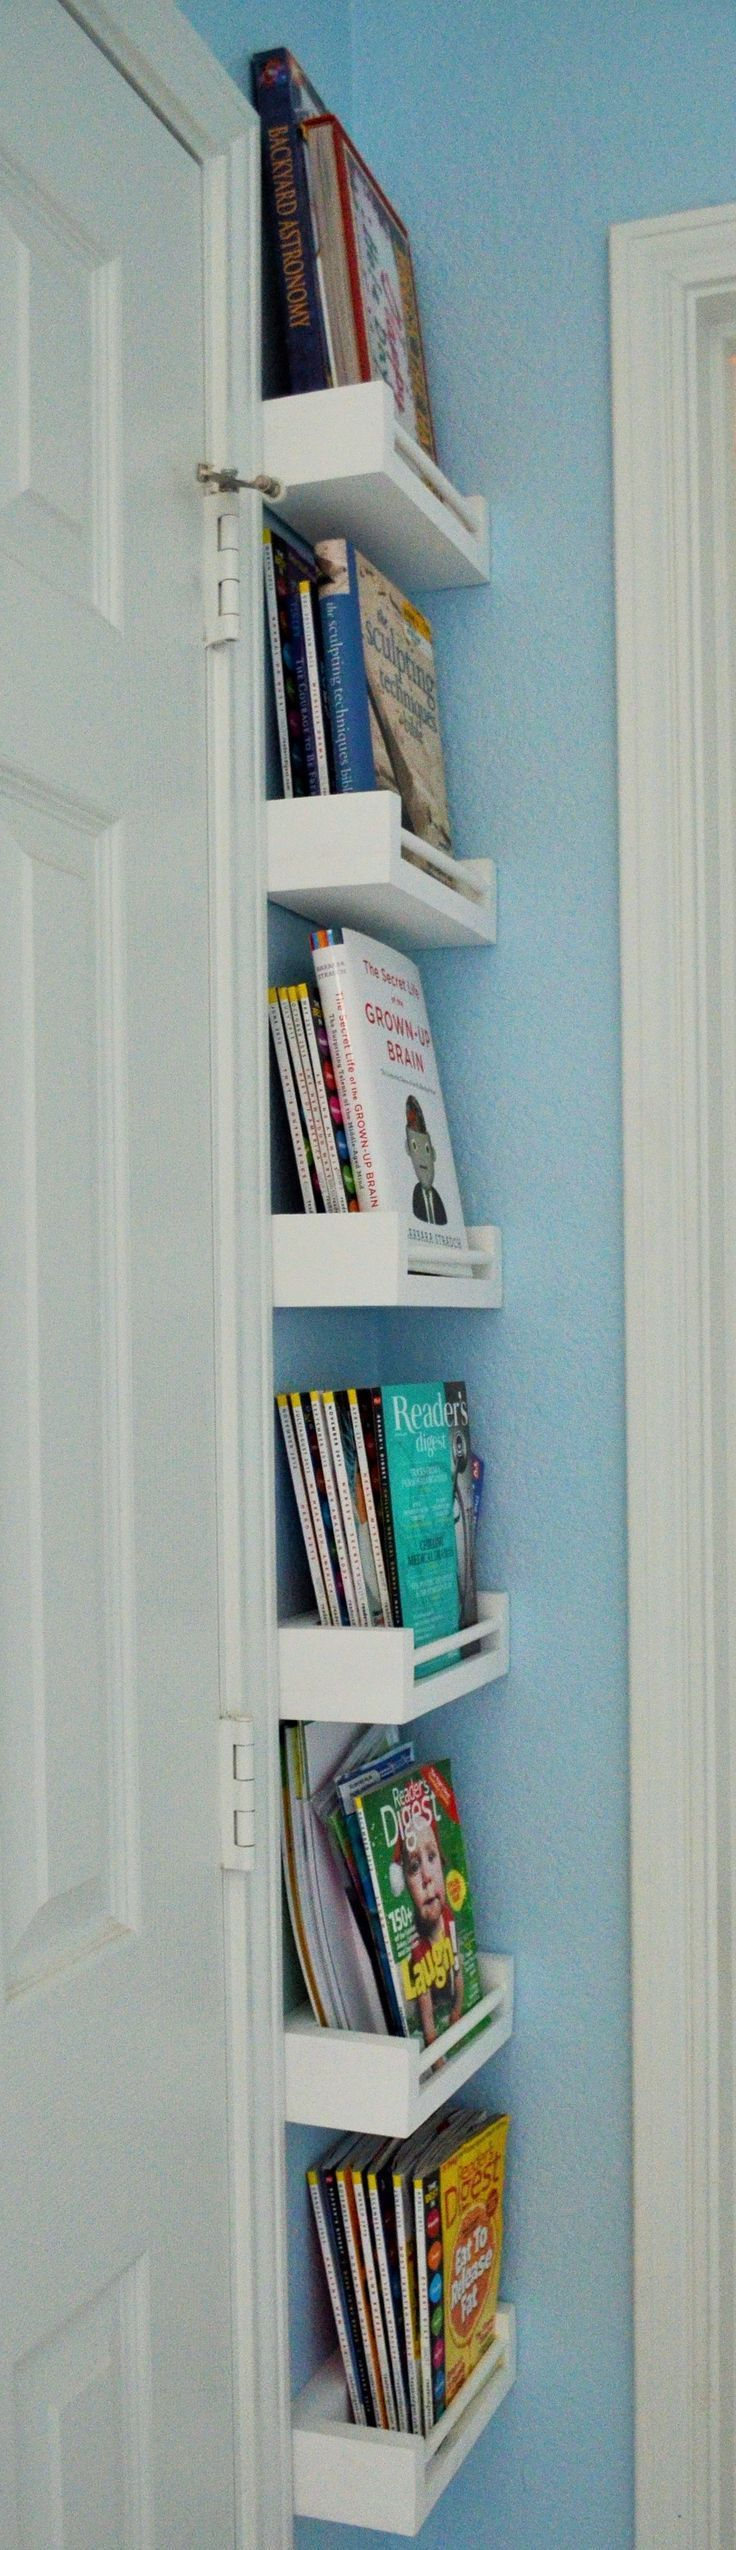 Small Corner Bookshelves  Work great for behind door in playroomBest 25  Small bedroom organization ideas on Pinterest   Small  . Diy Organizing Ideas For Bedrooms. Home Design Ideas